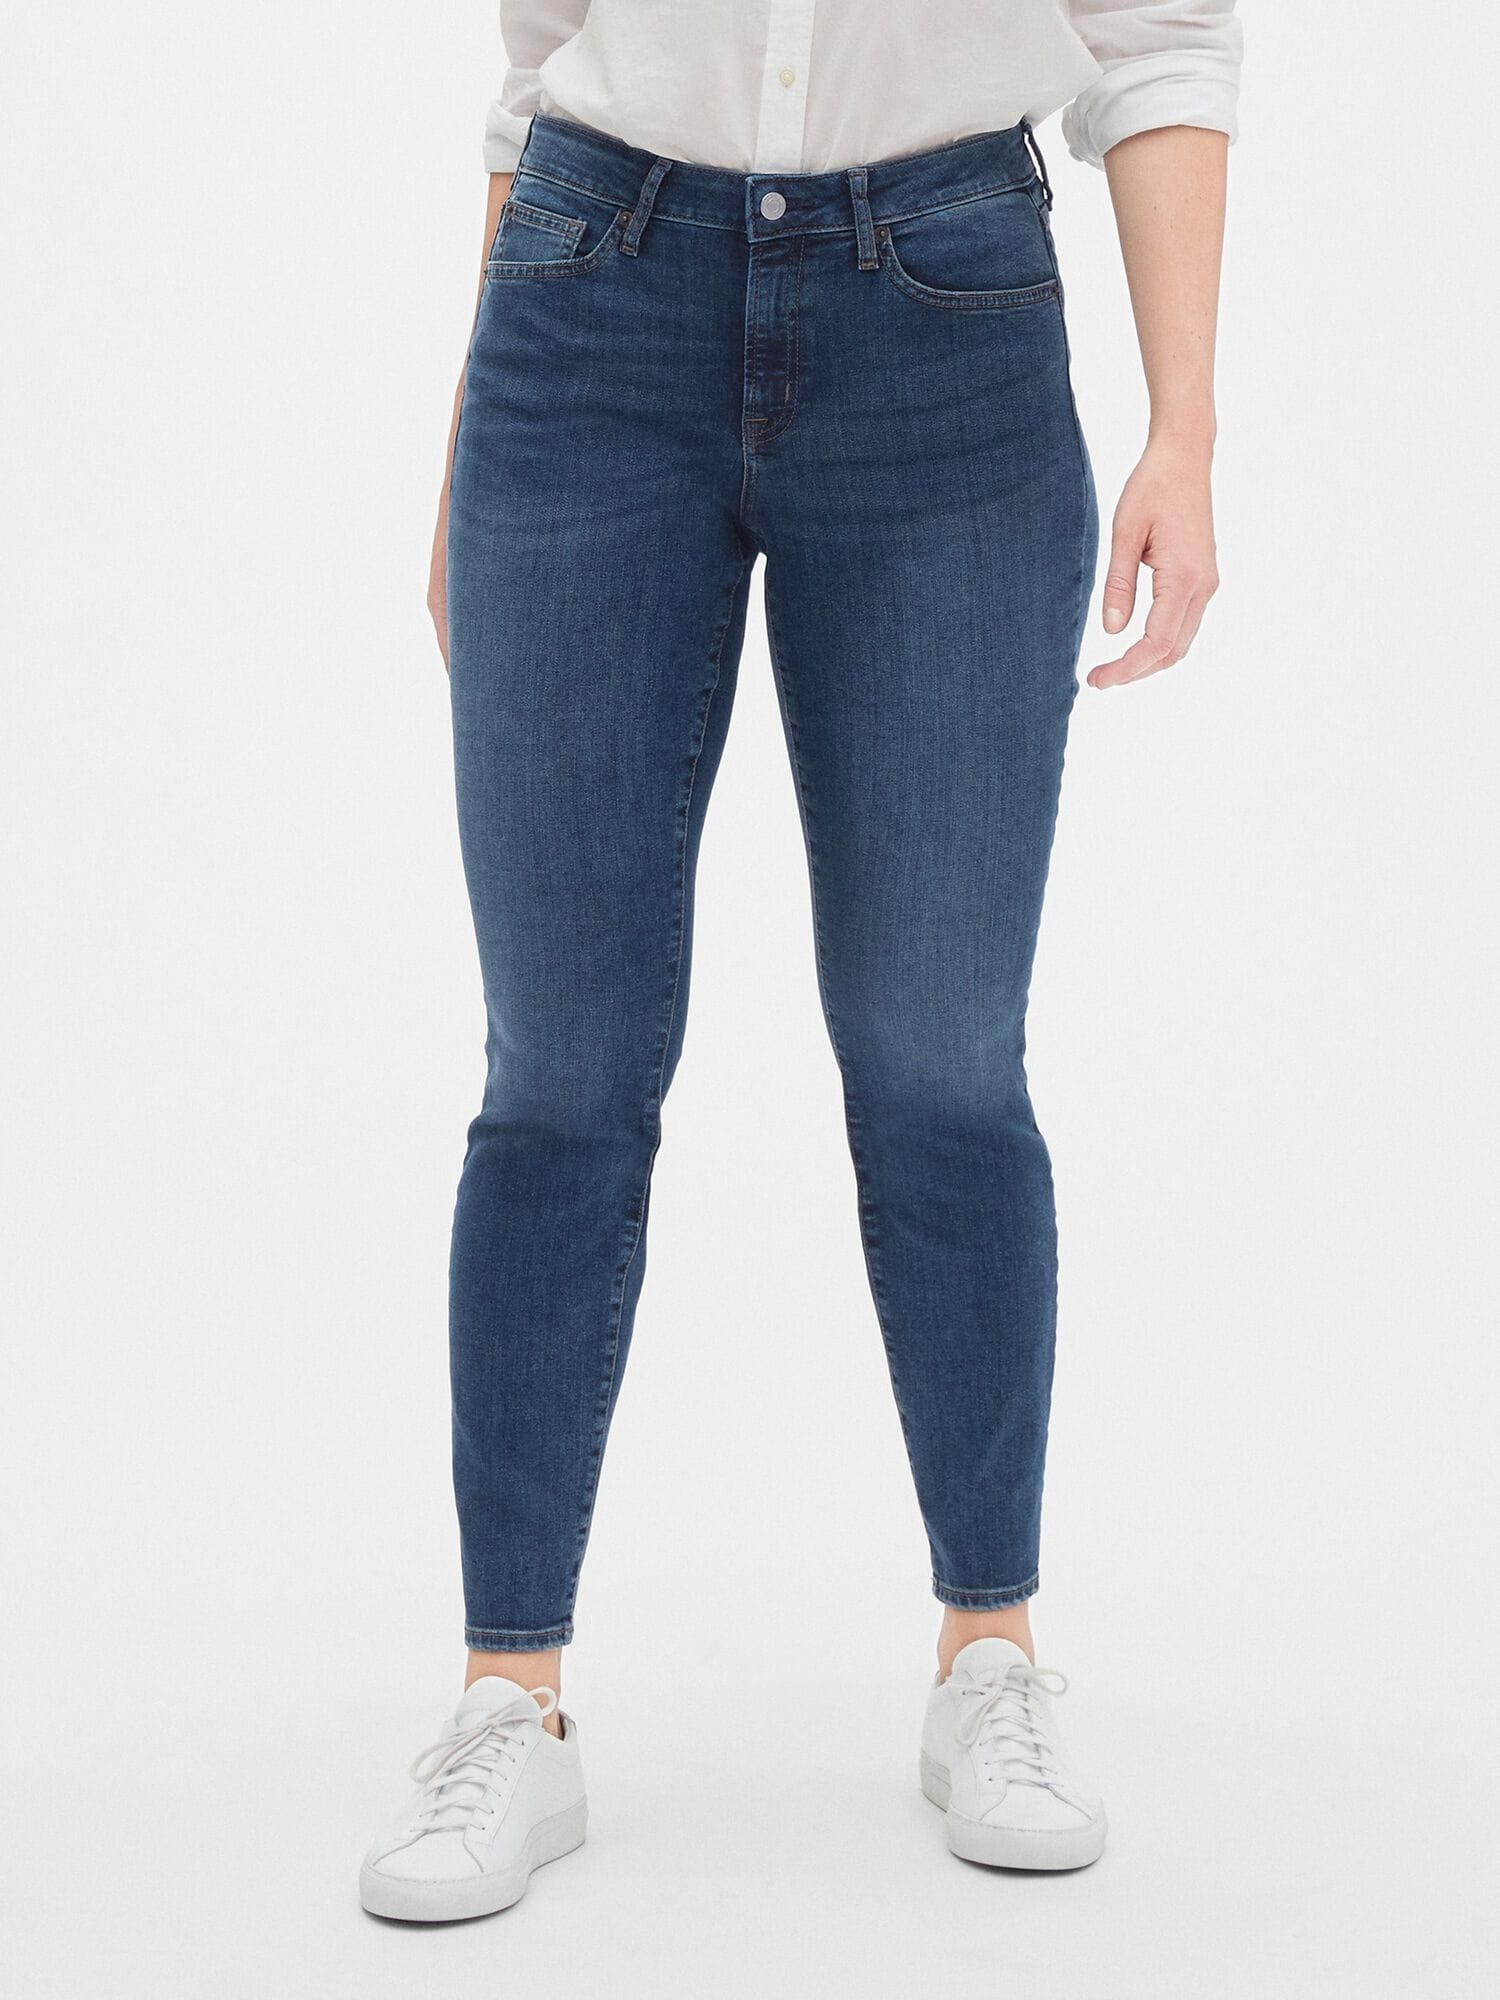 innovative design 5c4d9 0a747 Mid Rise Curvy True Skinny Jeans